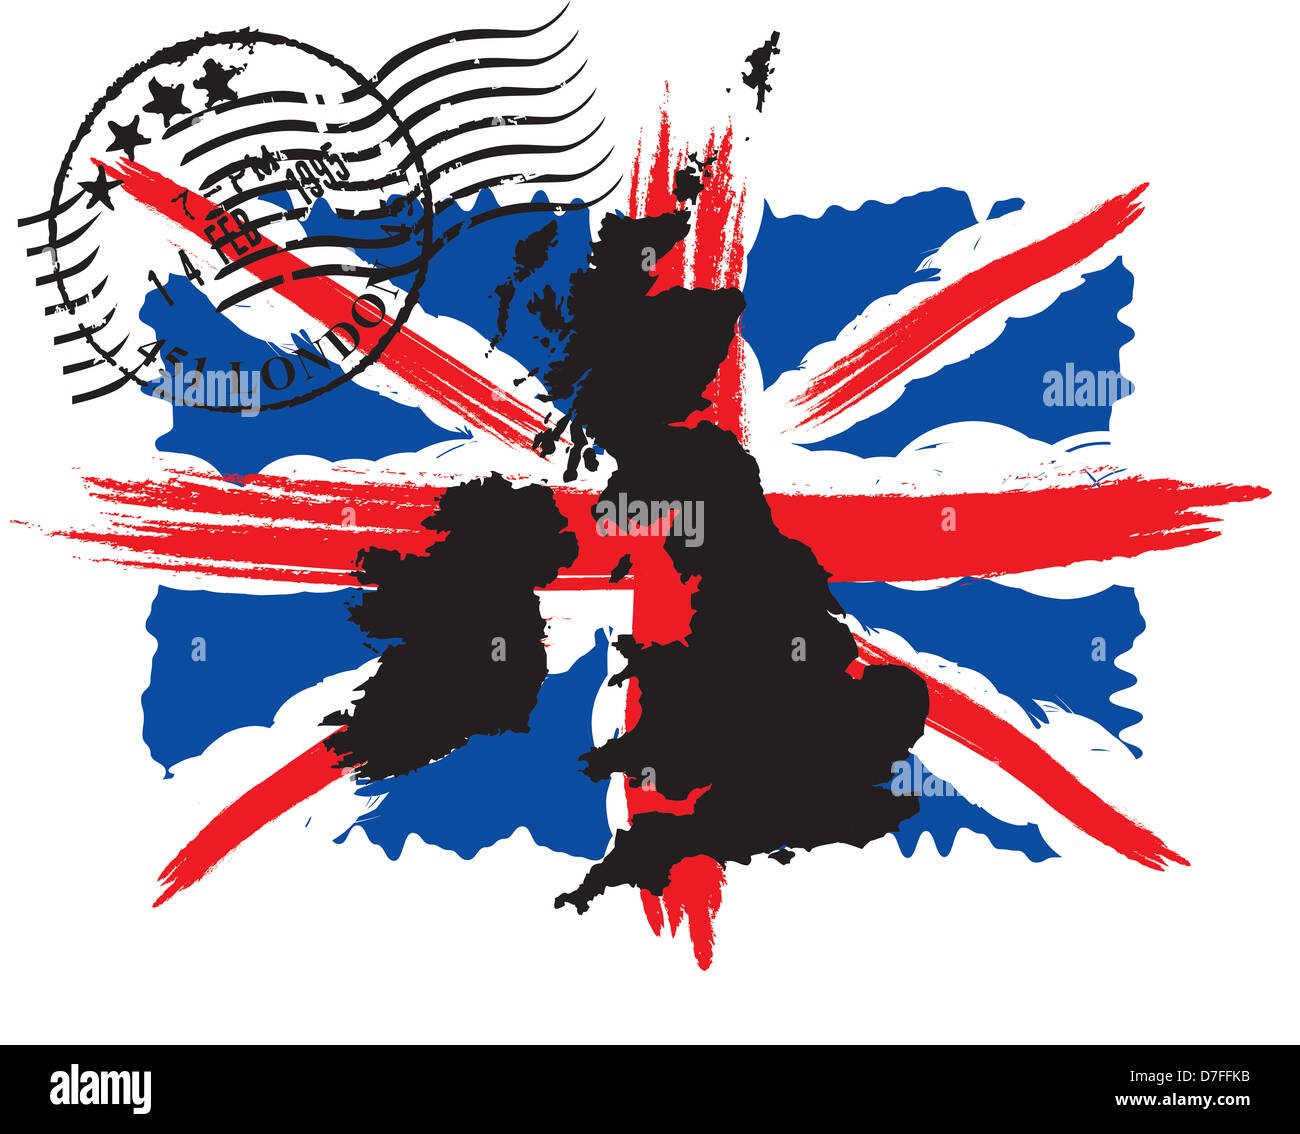 flag,English,map,England,UK,postmark,nation,state,silhouette,britain,europe,island,queen,blue, red, - Stock Image